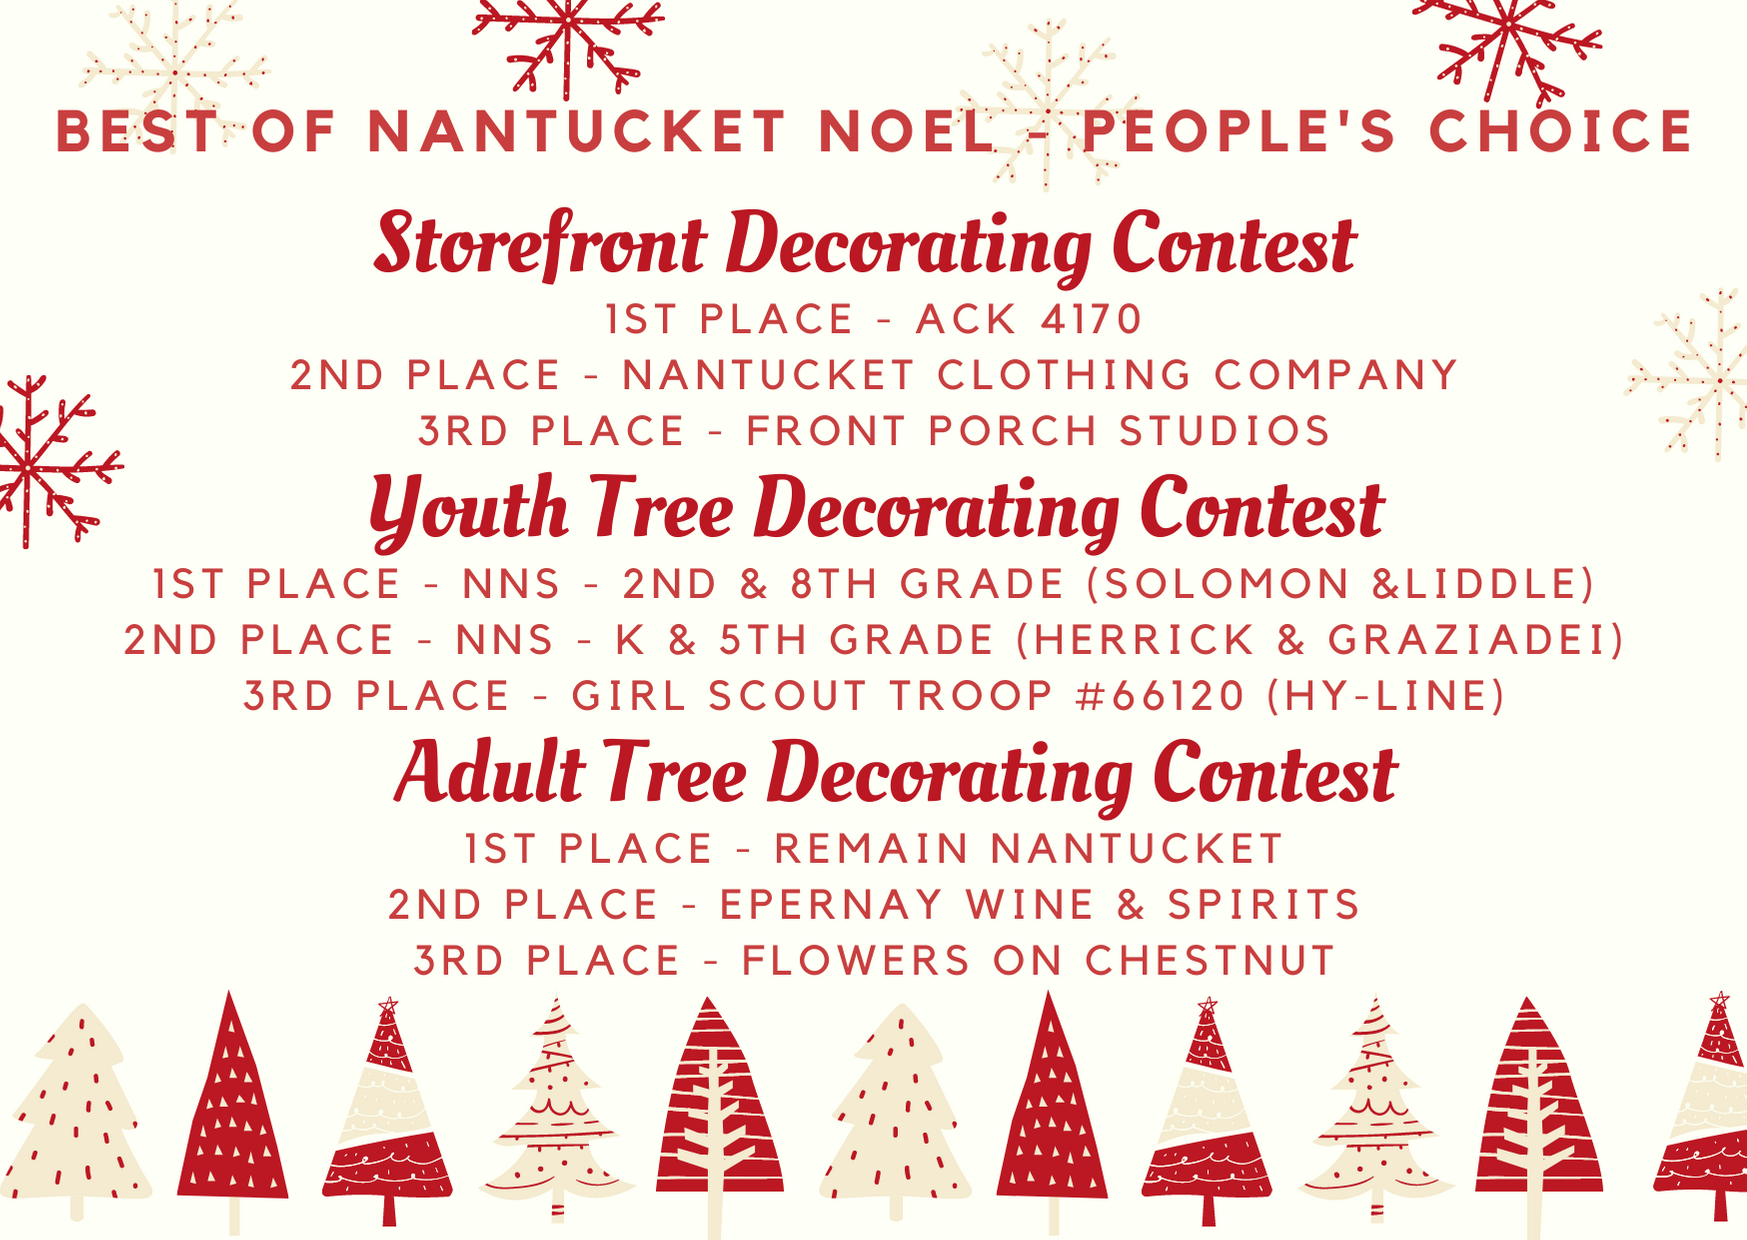 Nantucket-Noel-Winners-2020-FB.png